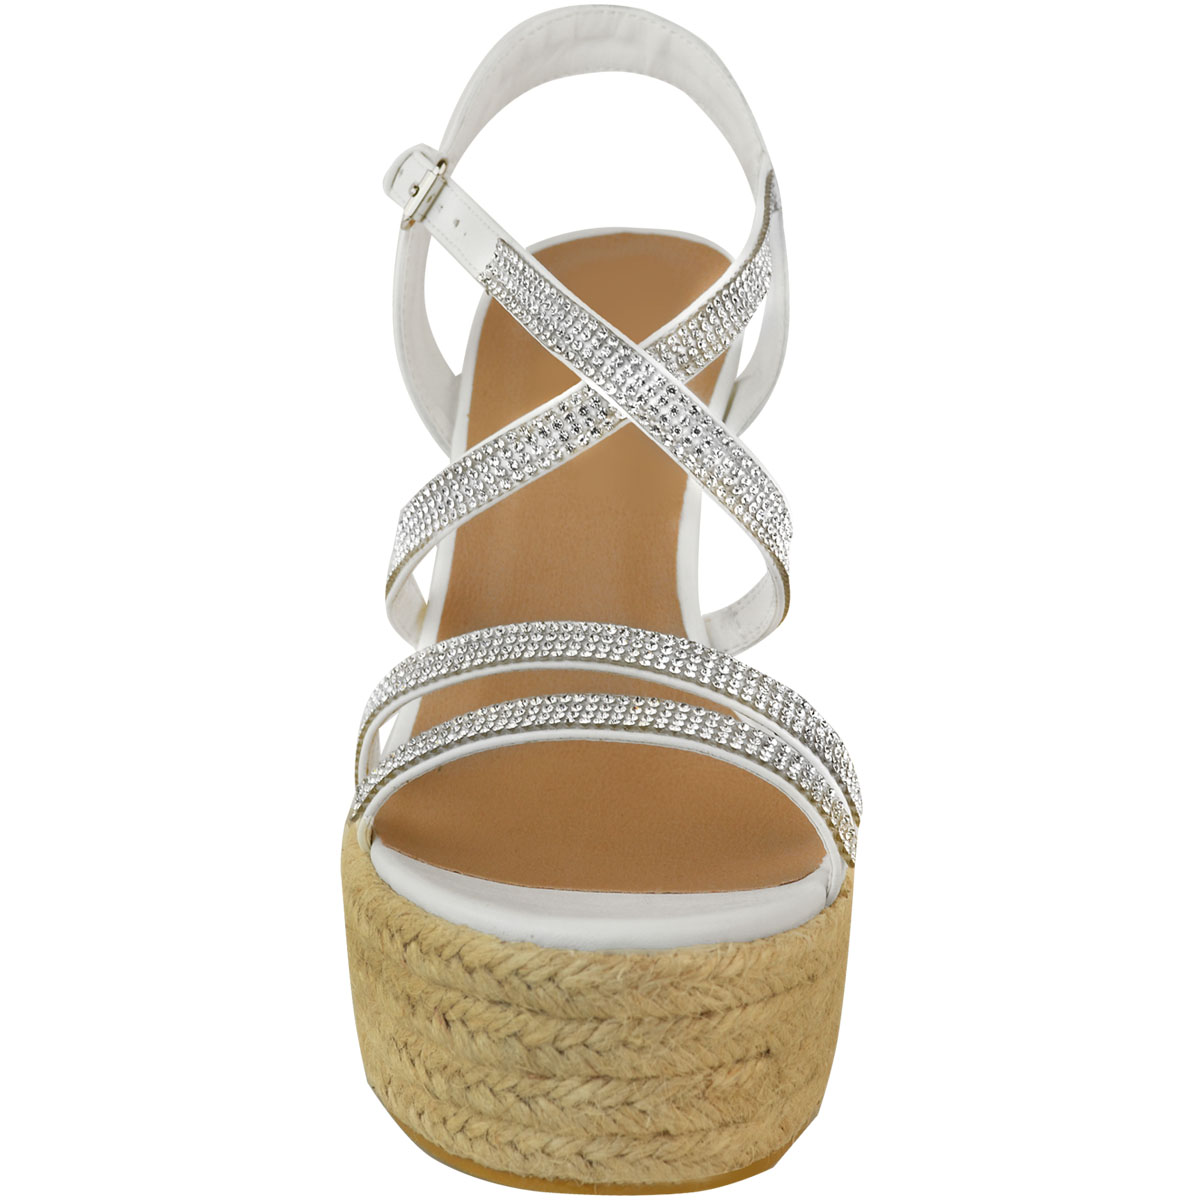 Womens-Ladies-Strappy-Diamante-Wedge-High-Heels-Sandals-Platforms-Shoes-Size-UK thumbnail 11